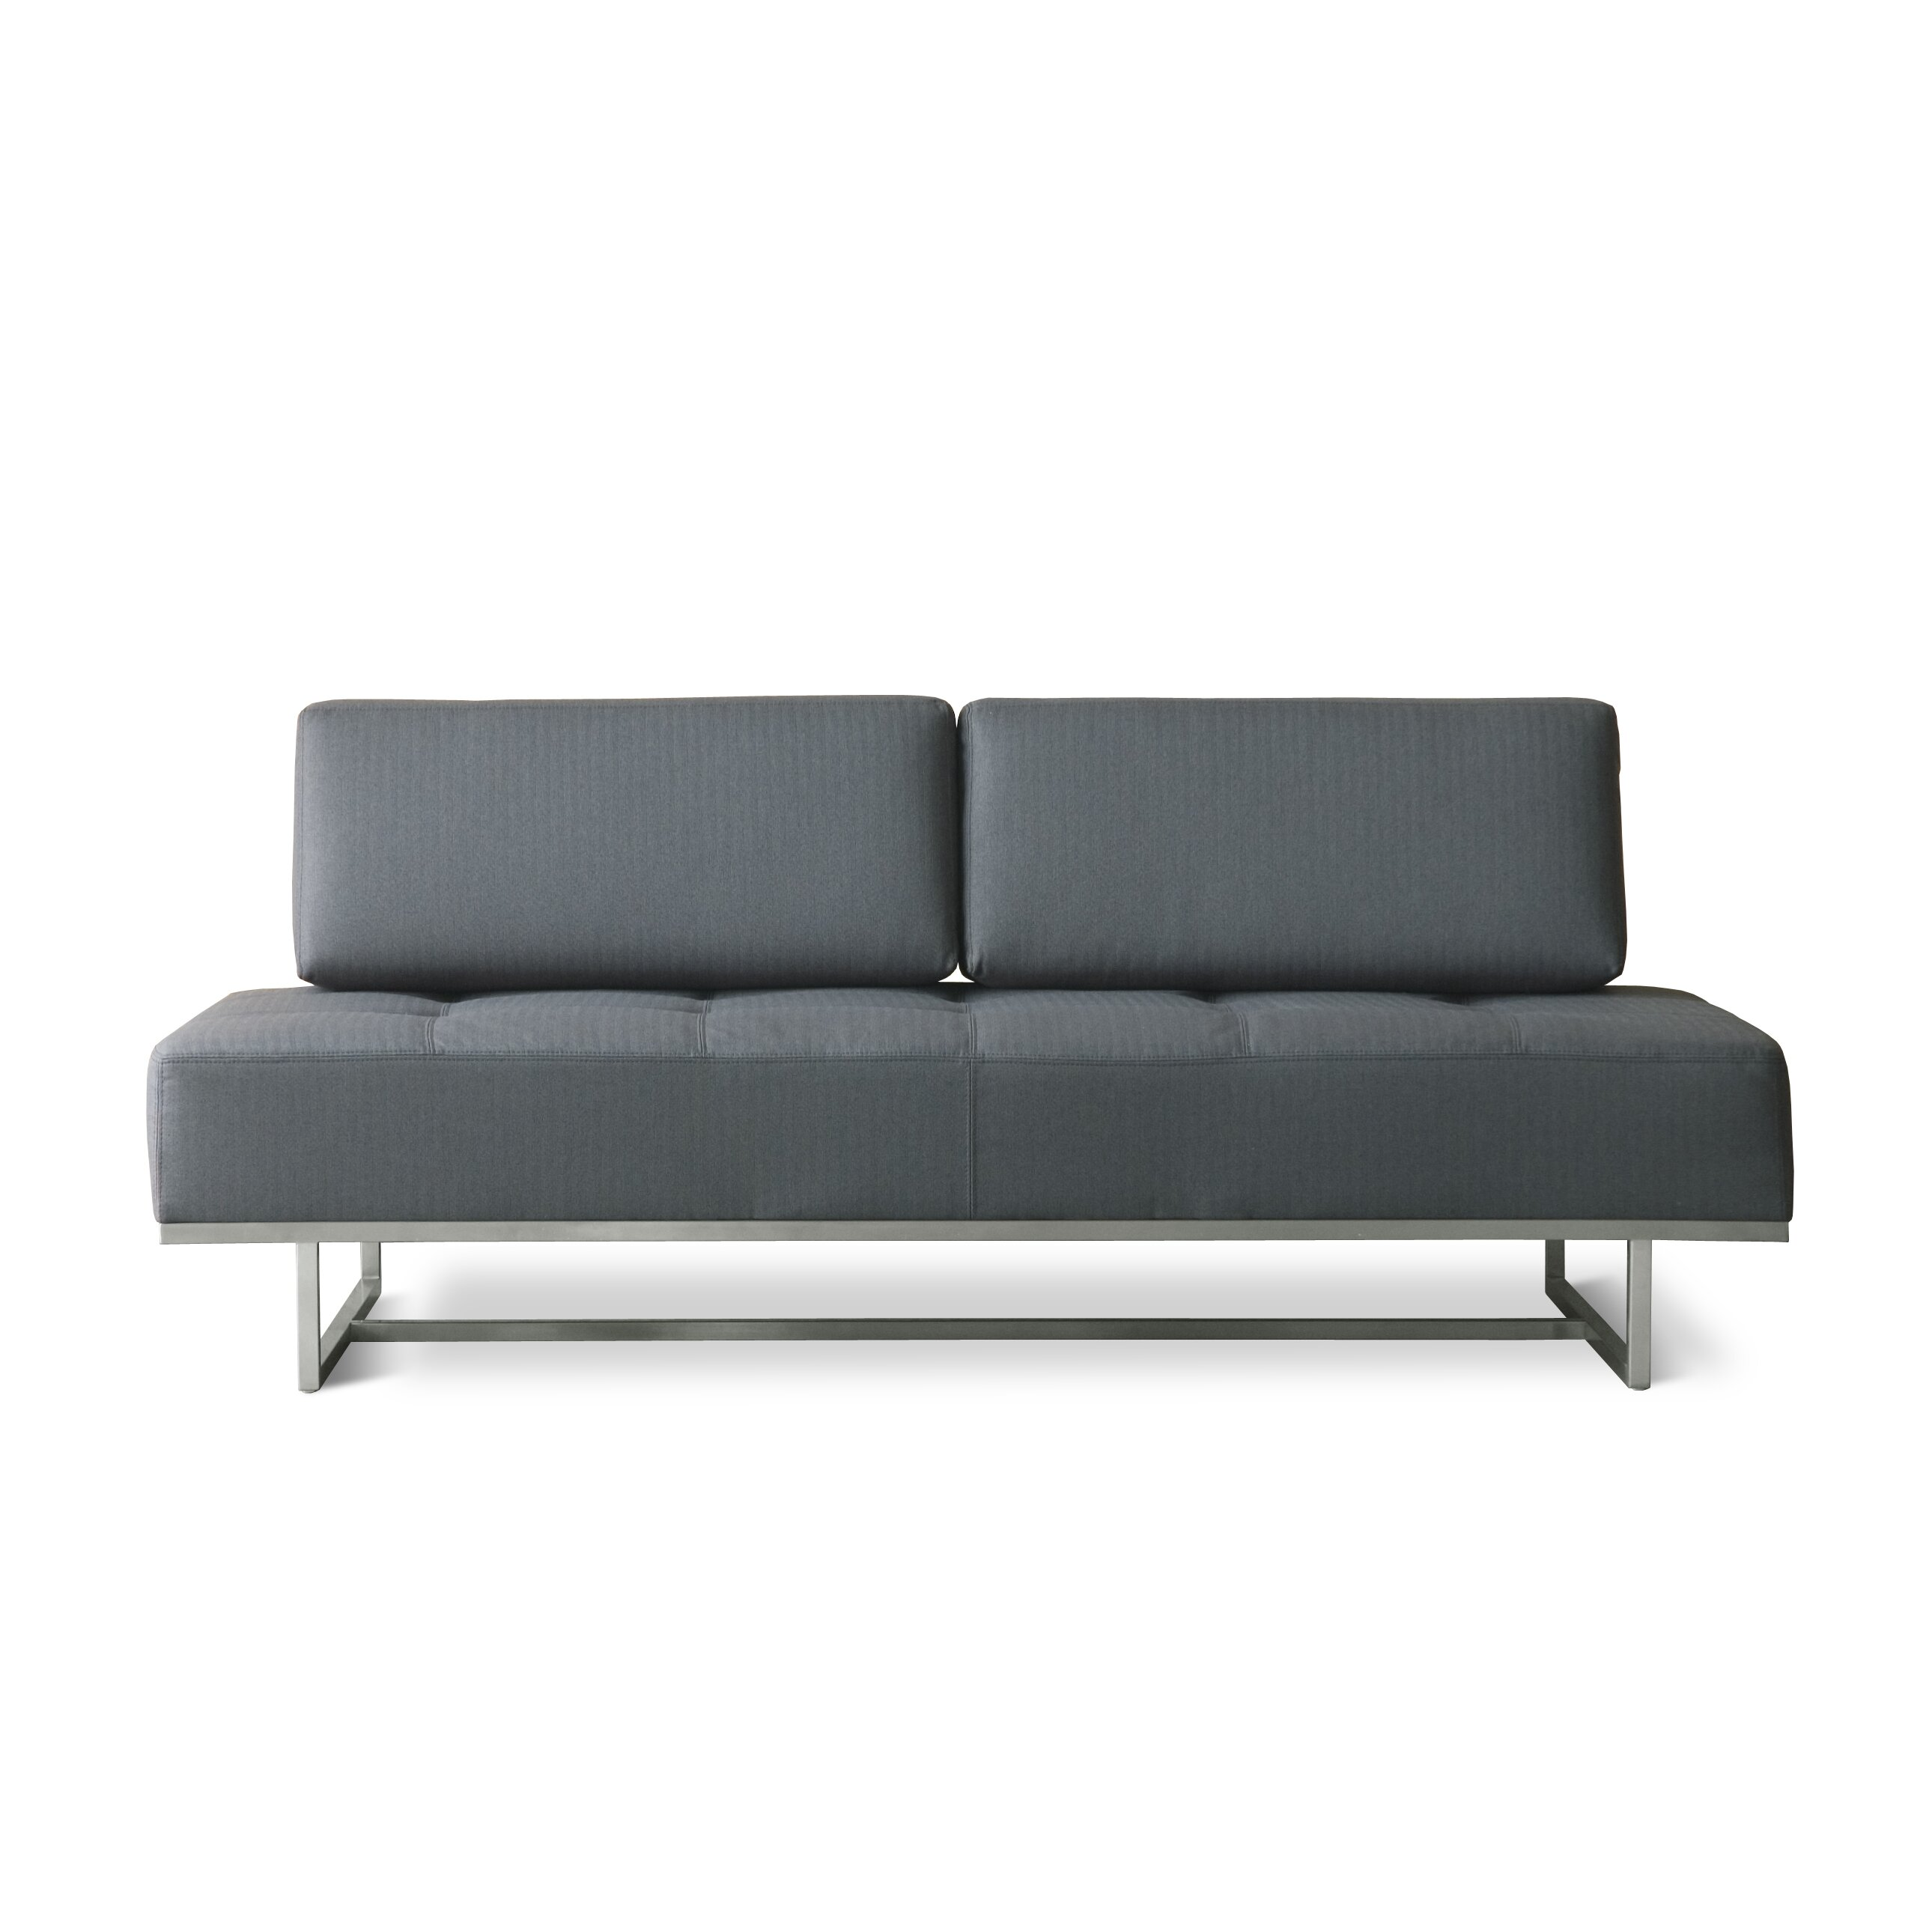 Gus modern james convertible sofa allmodern for Modern lounge sofa